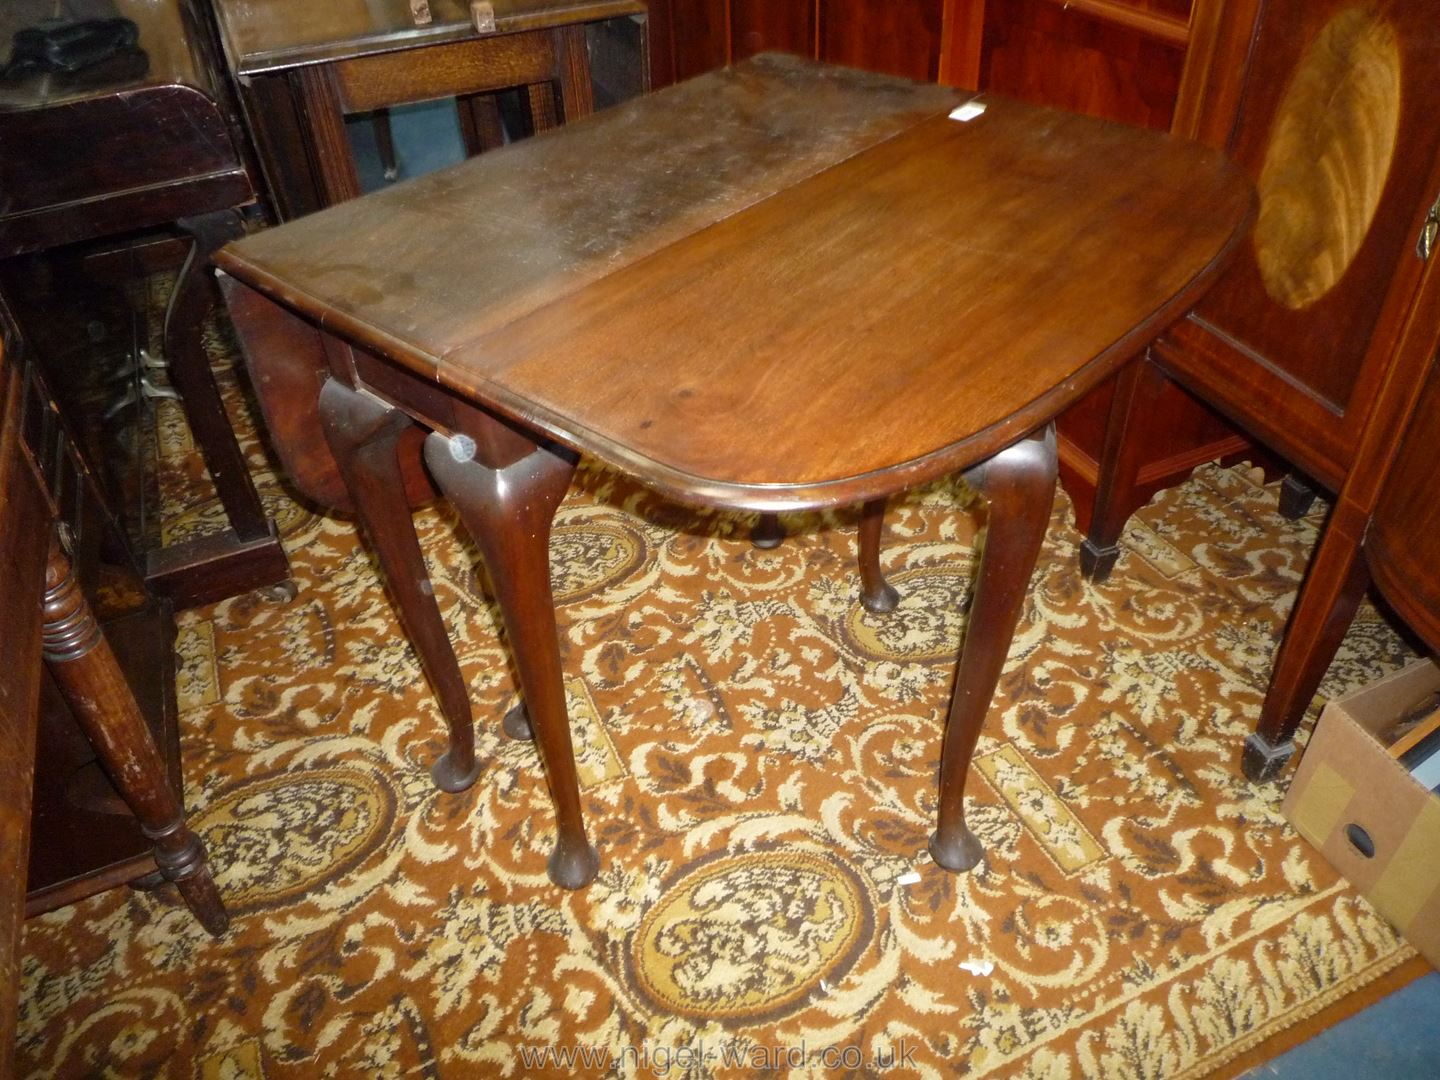 A good Mahogany drop-leaf swing-leg Dining Table standing on cabriole legs terminating in pad feet, - Image 3 of 6